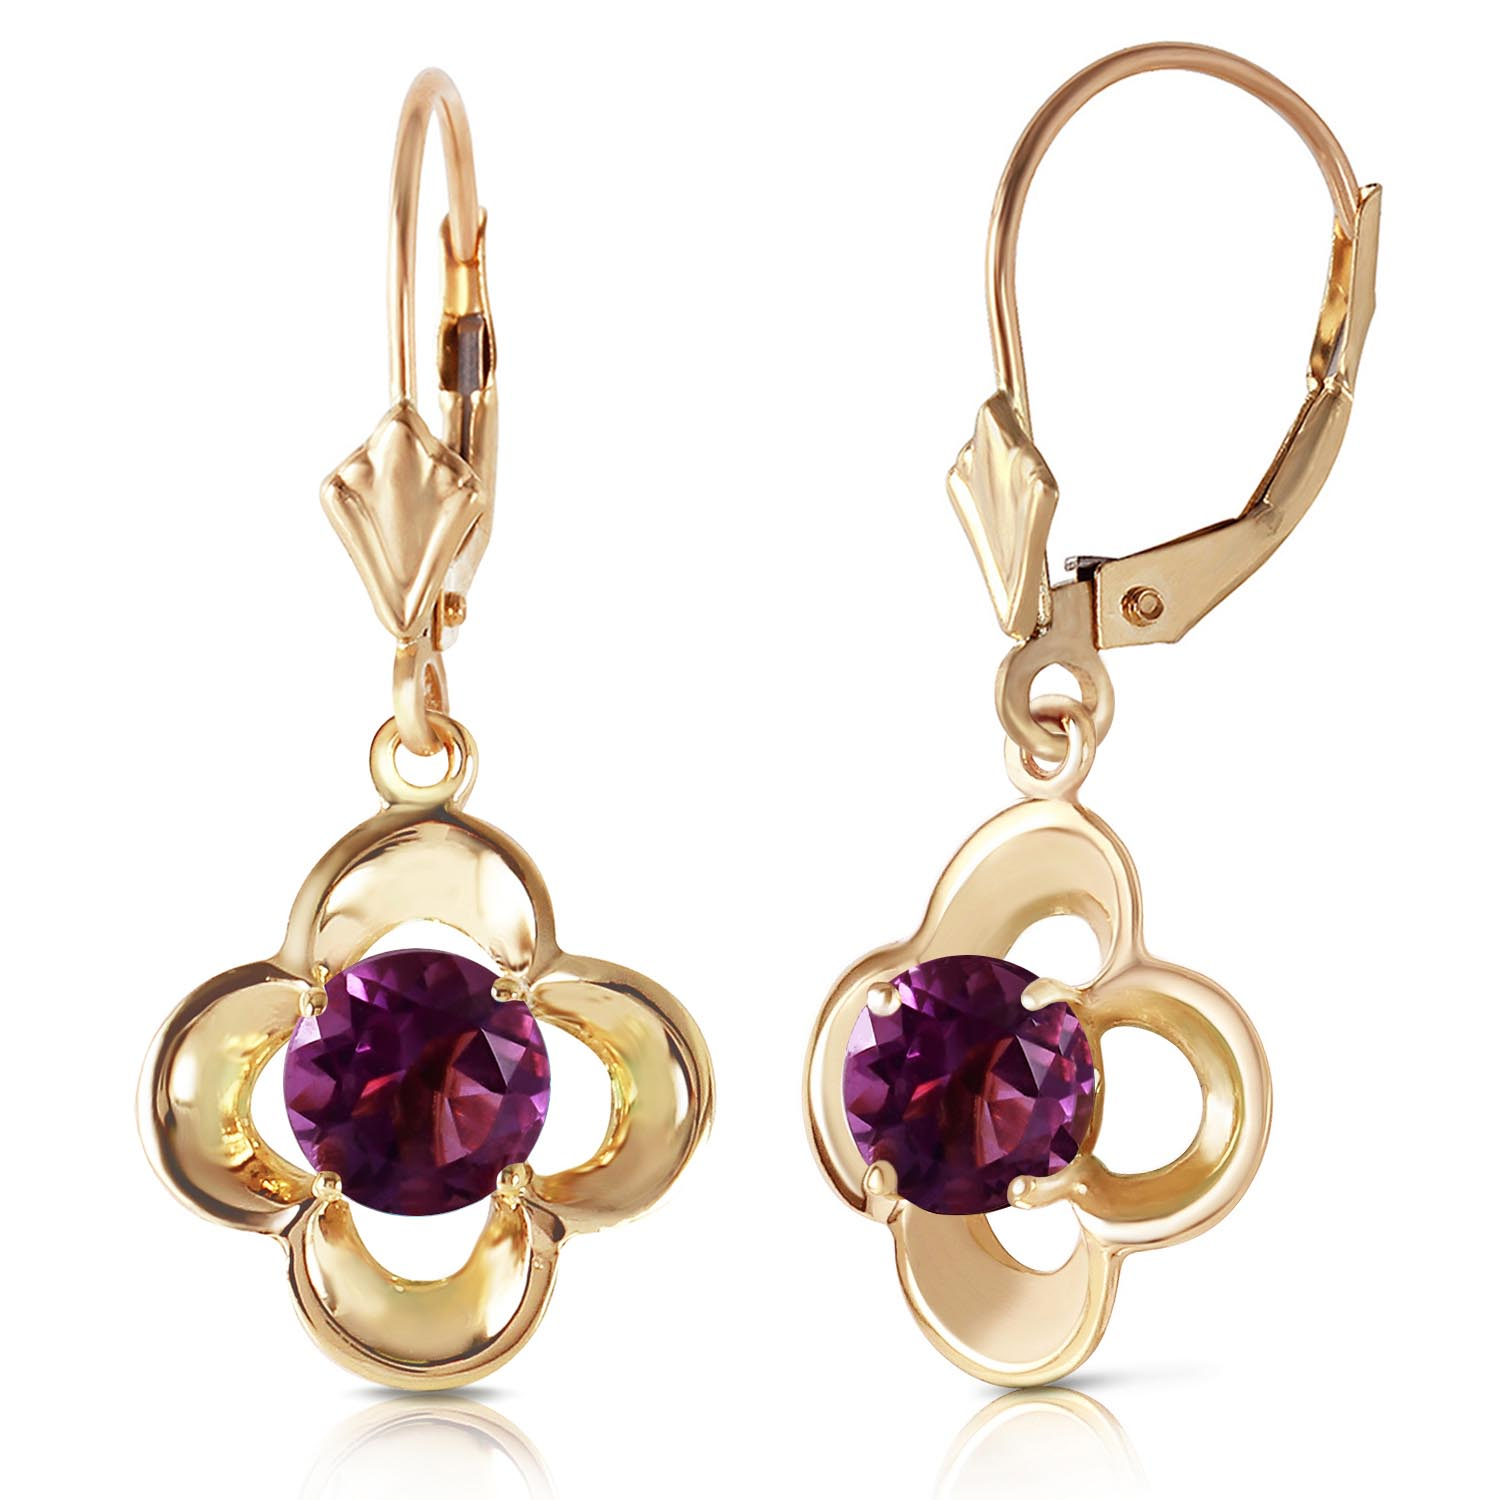 Amethyst Corona Drop Earrings 1.1 ctw in 9ct Gold